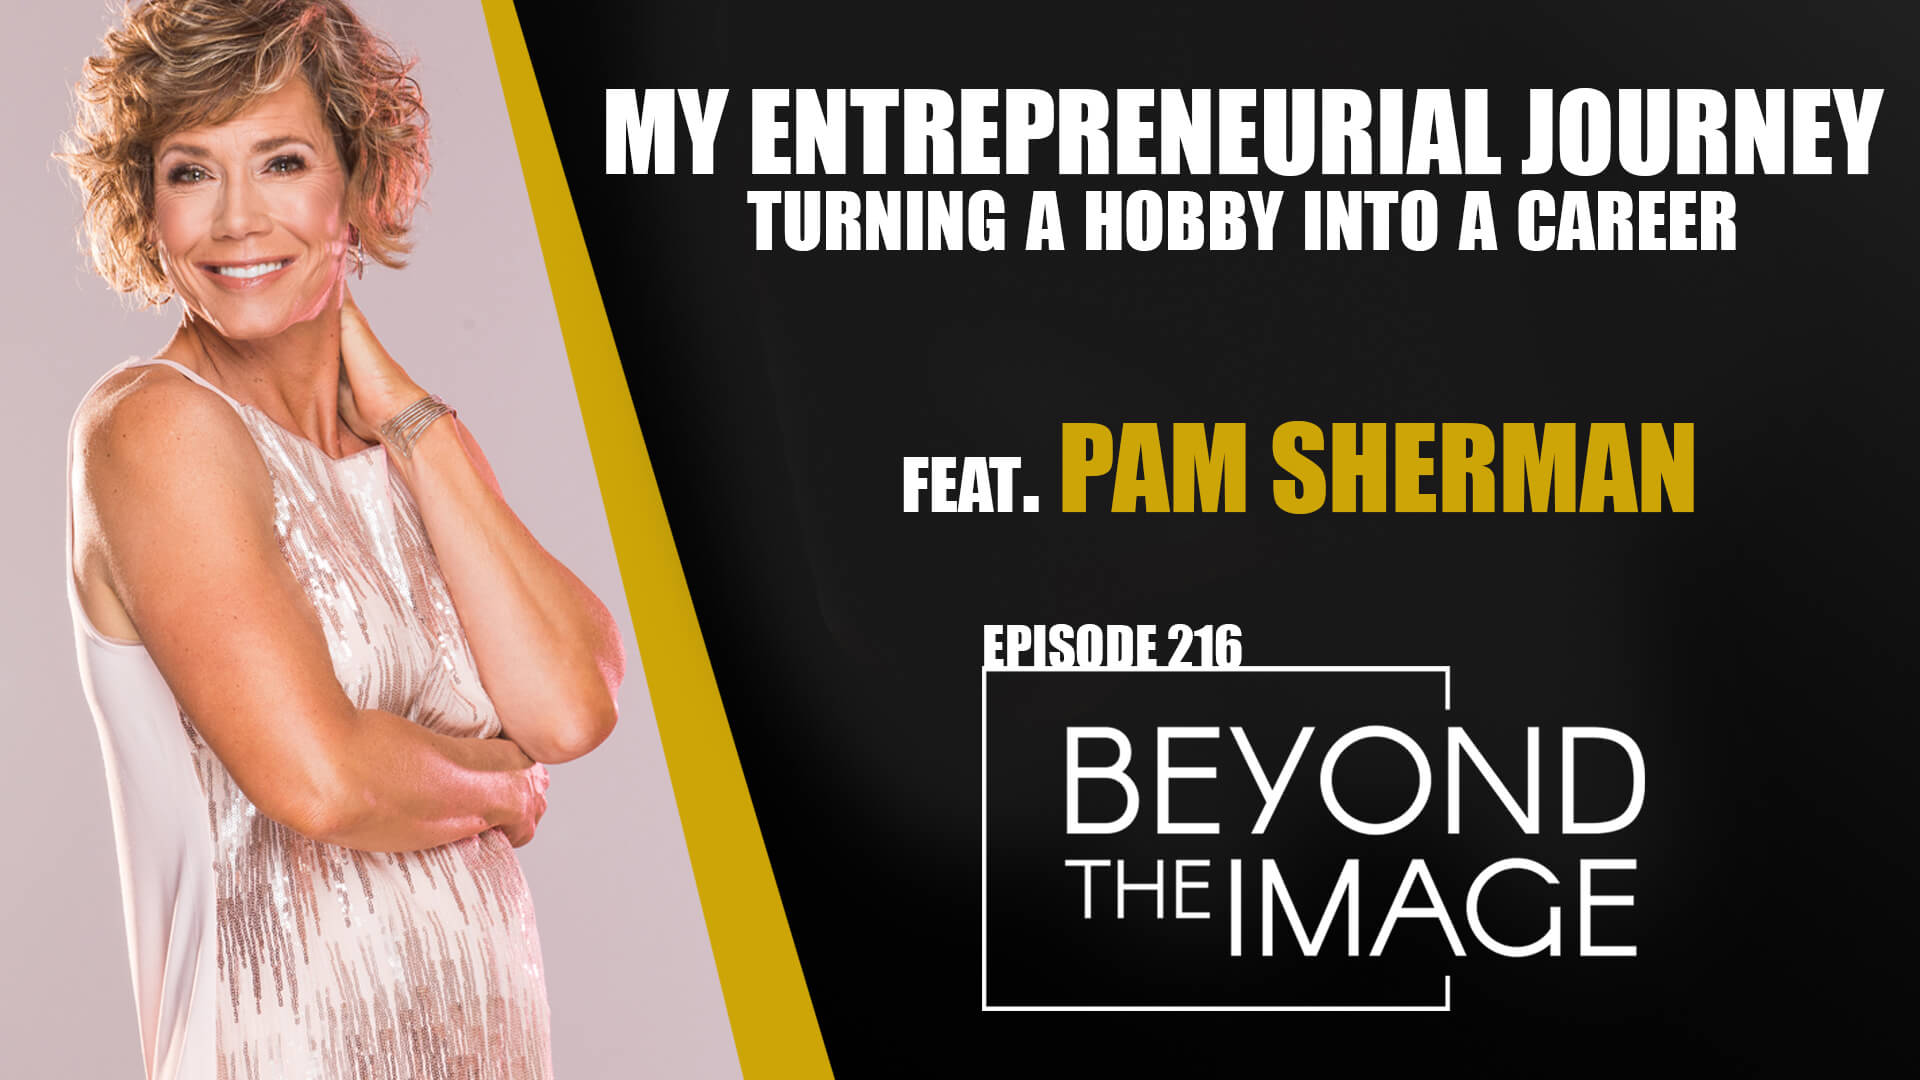 BTI #216: My Entrepreneurial Journey with Pam Sherman